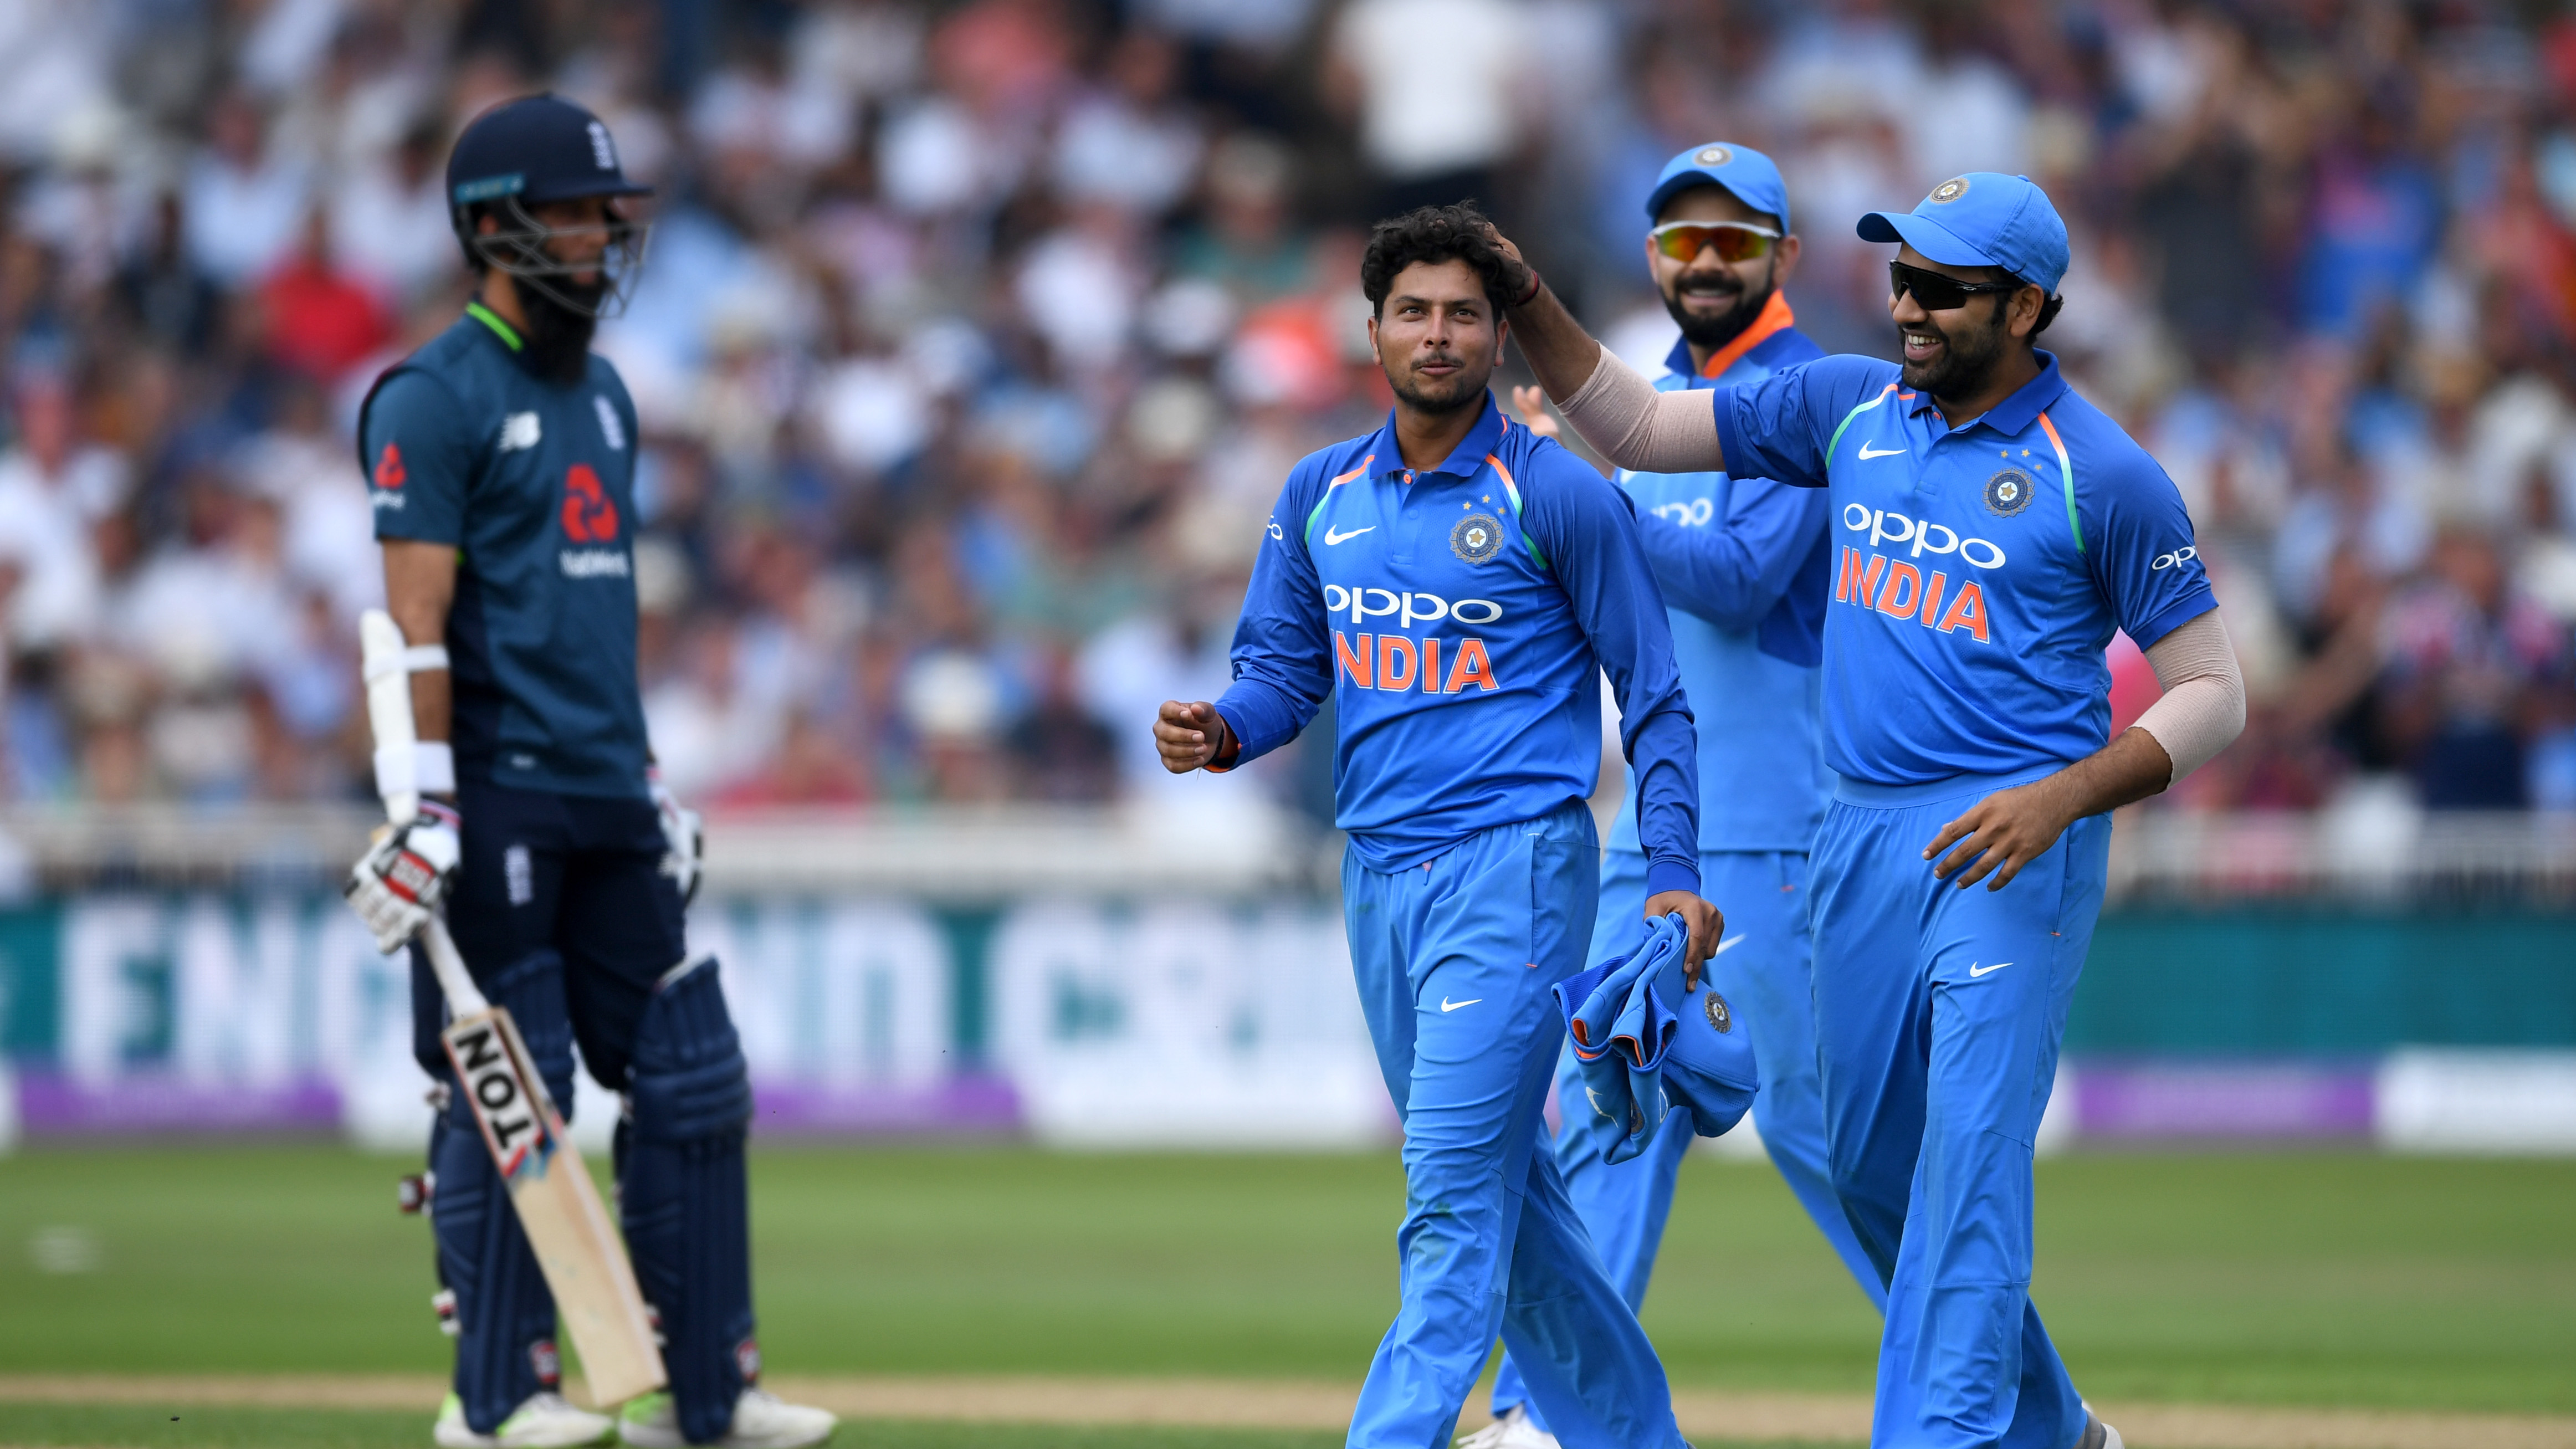 ENG vs IND 2018: Selection committee debates over Kuldeep Yadav and Rohit Sharma before Test squad announcement